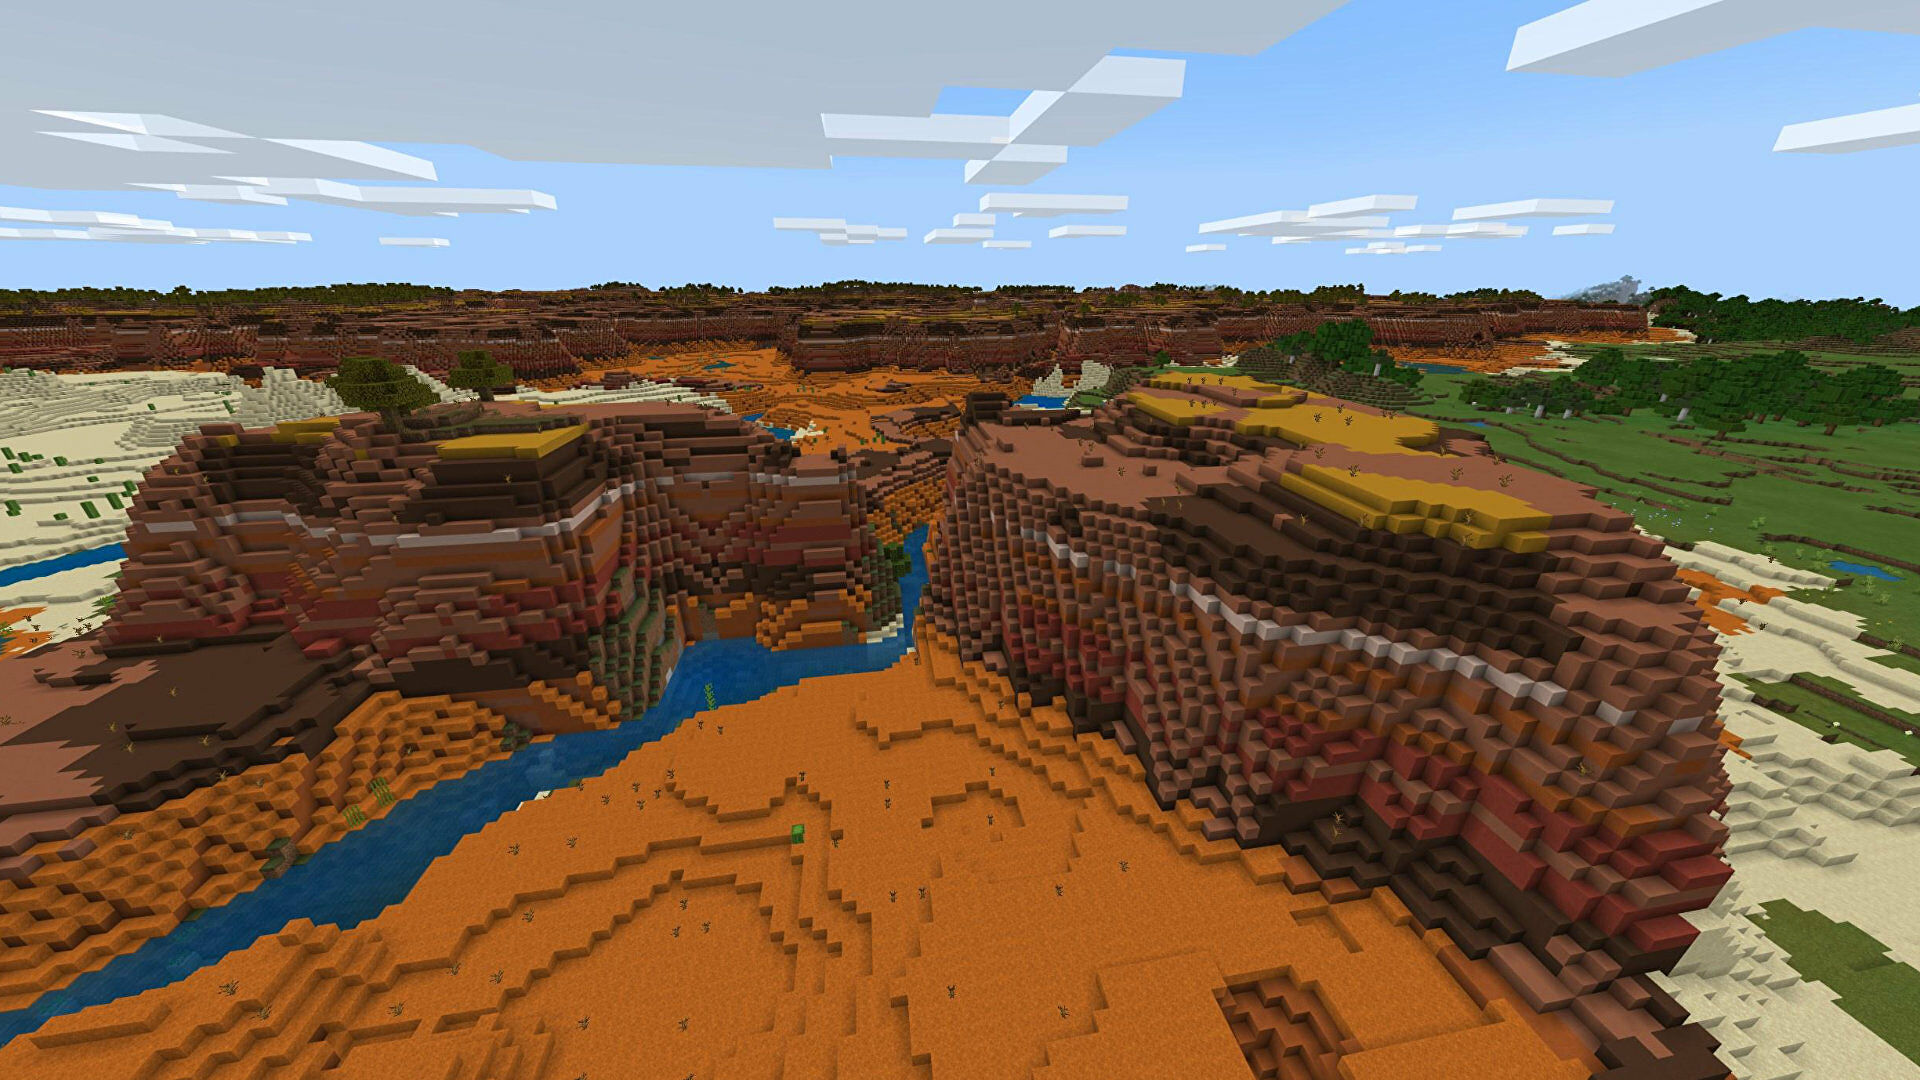 A Minecraft Bedrock screenshot of a new world created with the seed 46623432.